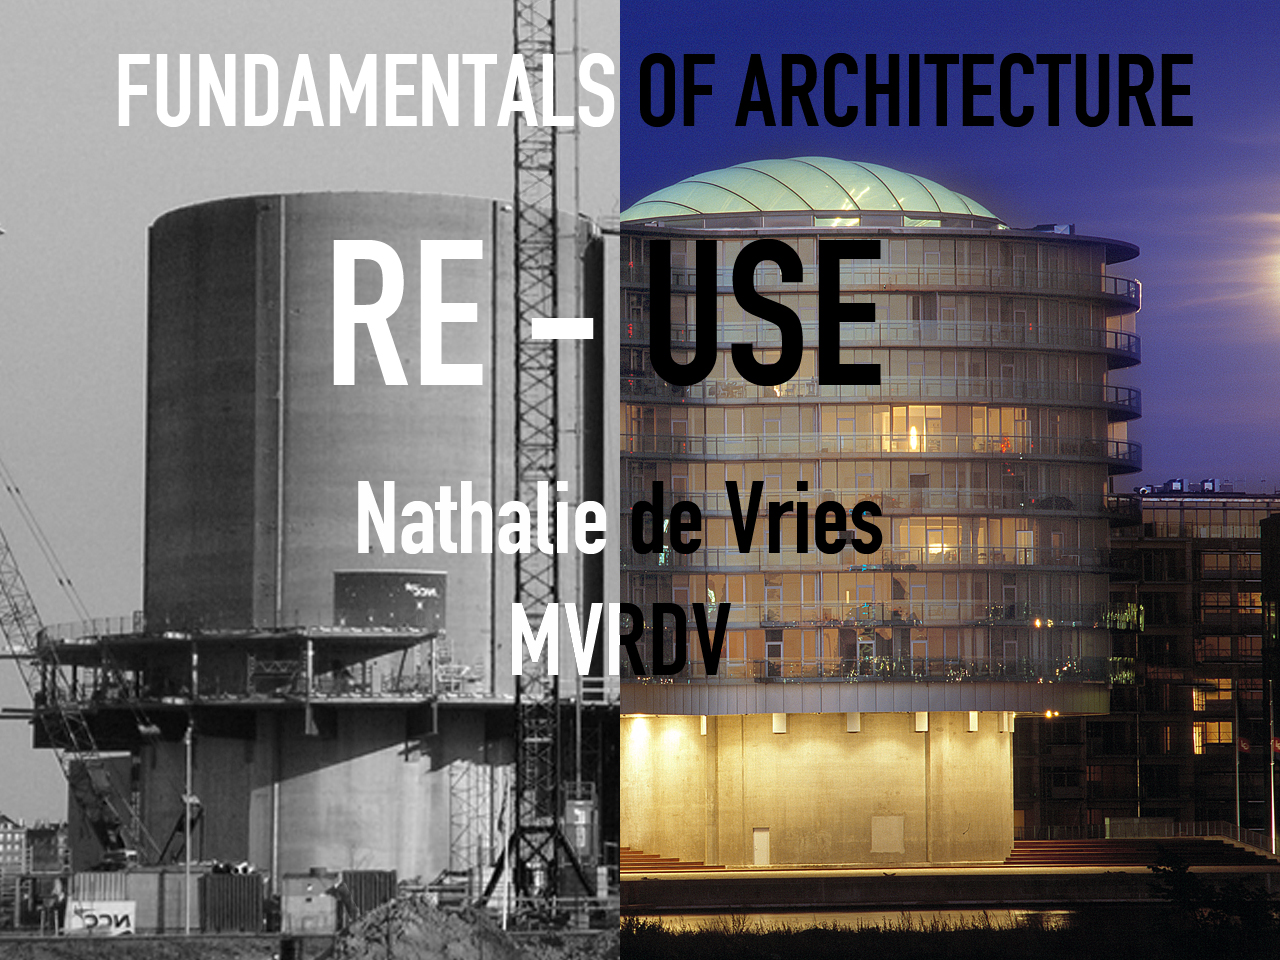 Lecture: Nathalie de Vries on 'Re-Use' in Dortmund